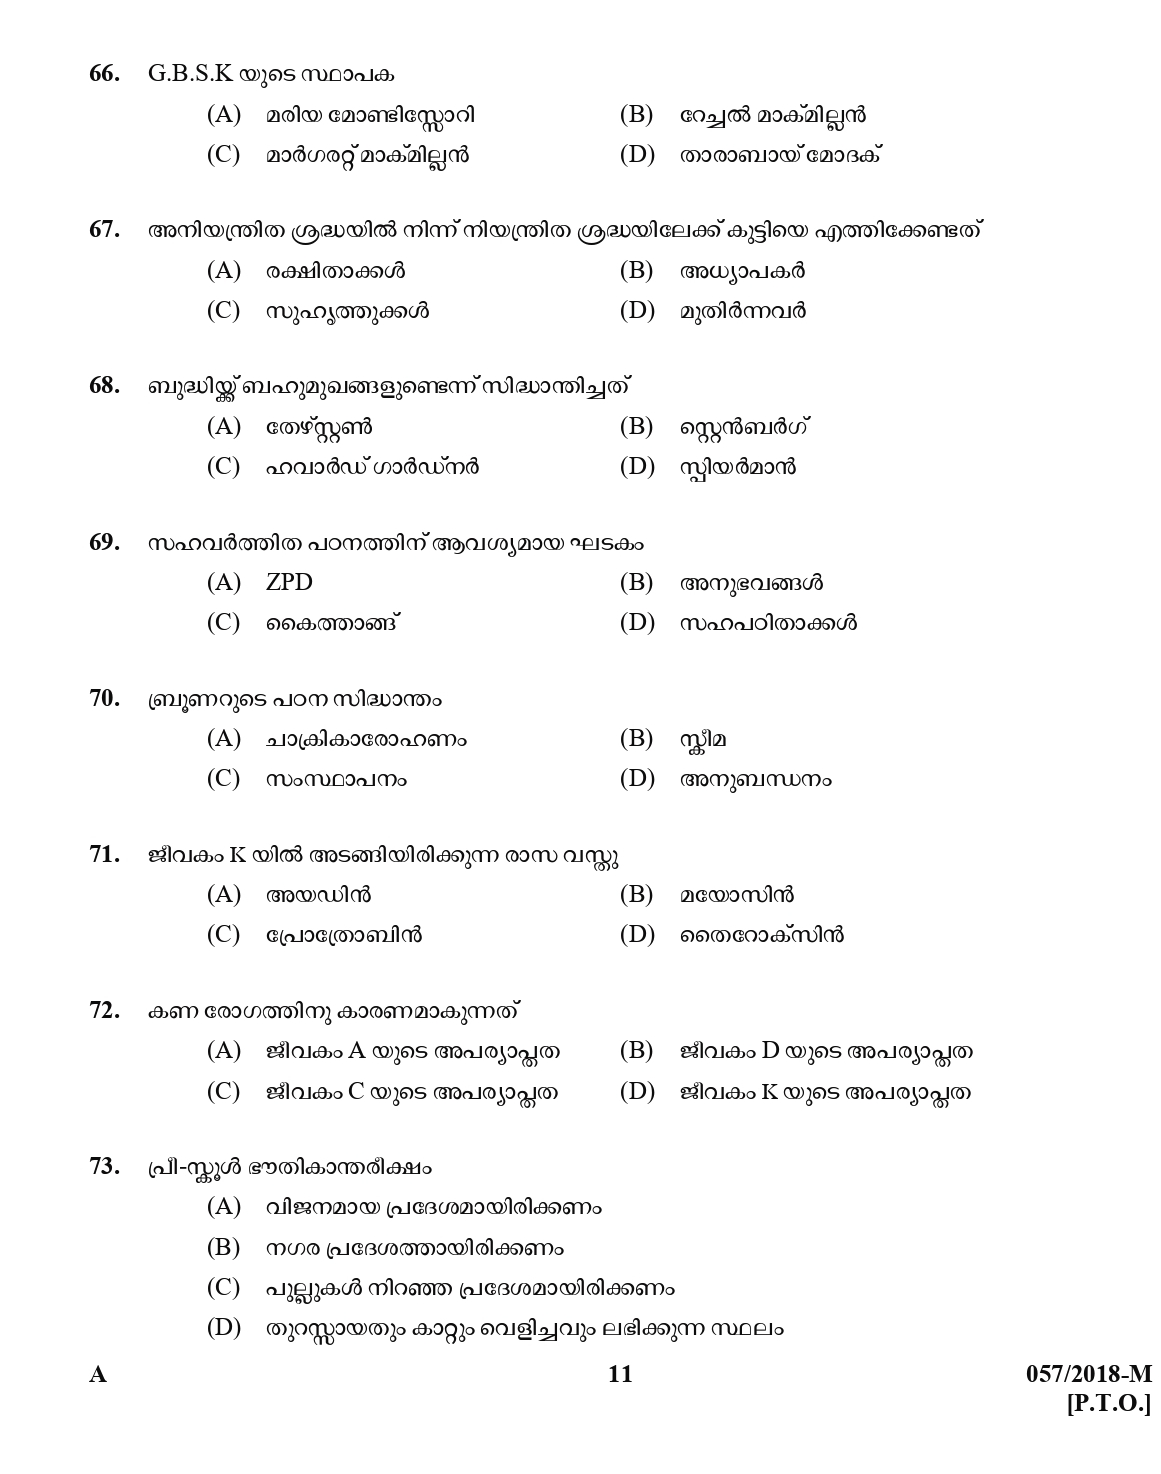 Nursery Teacher Question Paper with Answer Key -57/2018 - Kerala PSC - PSC THRILLER